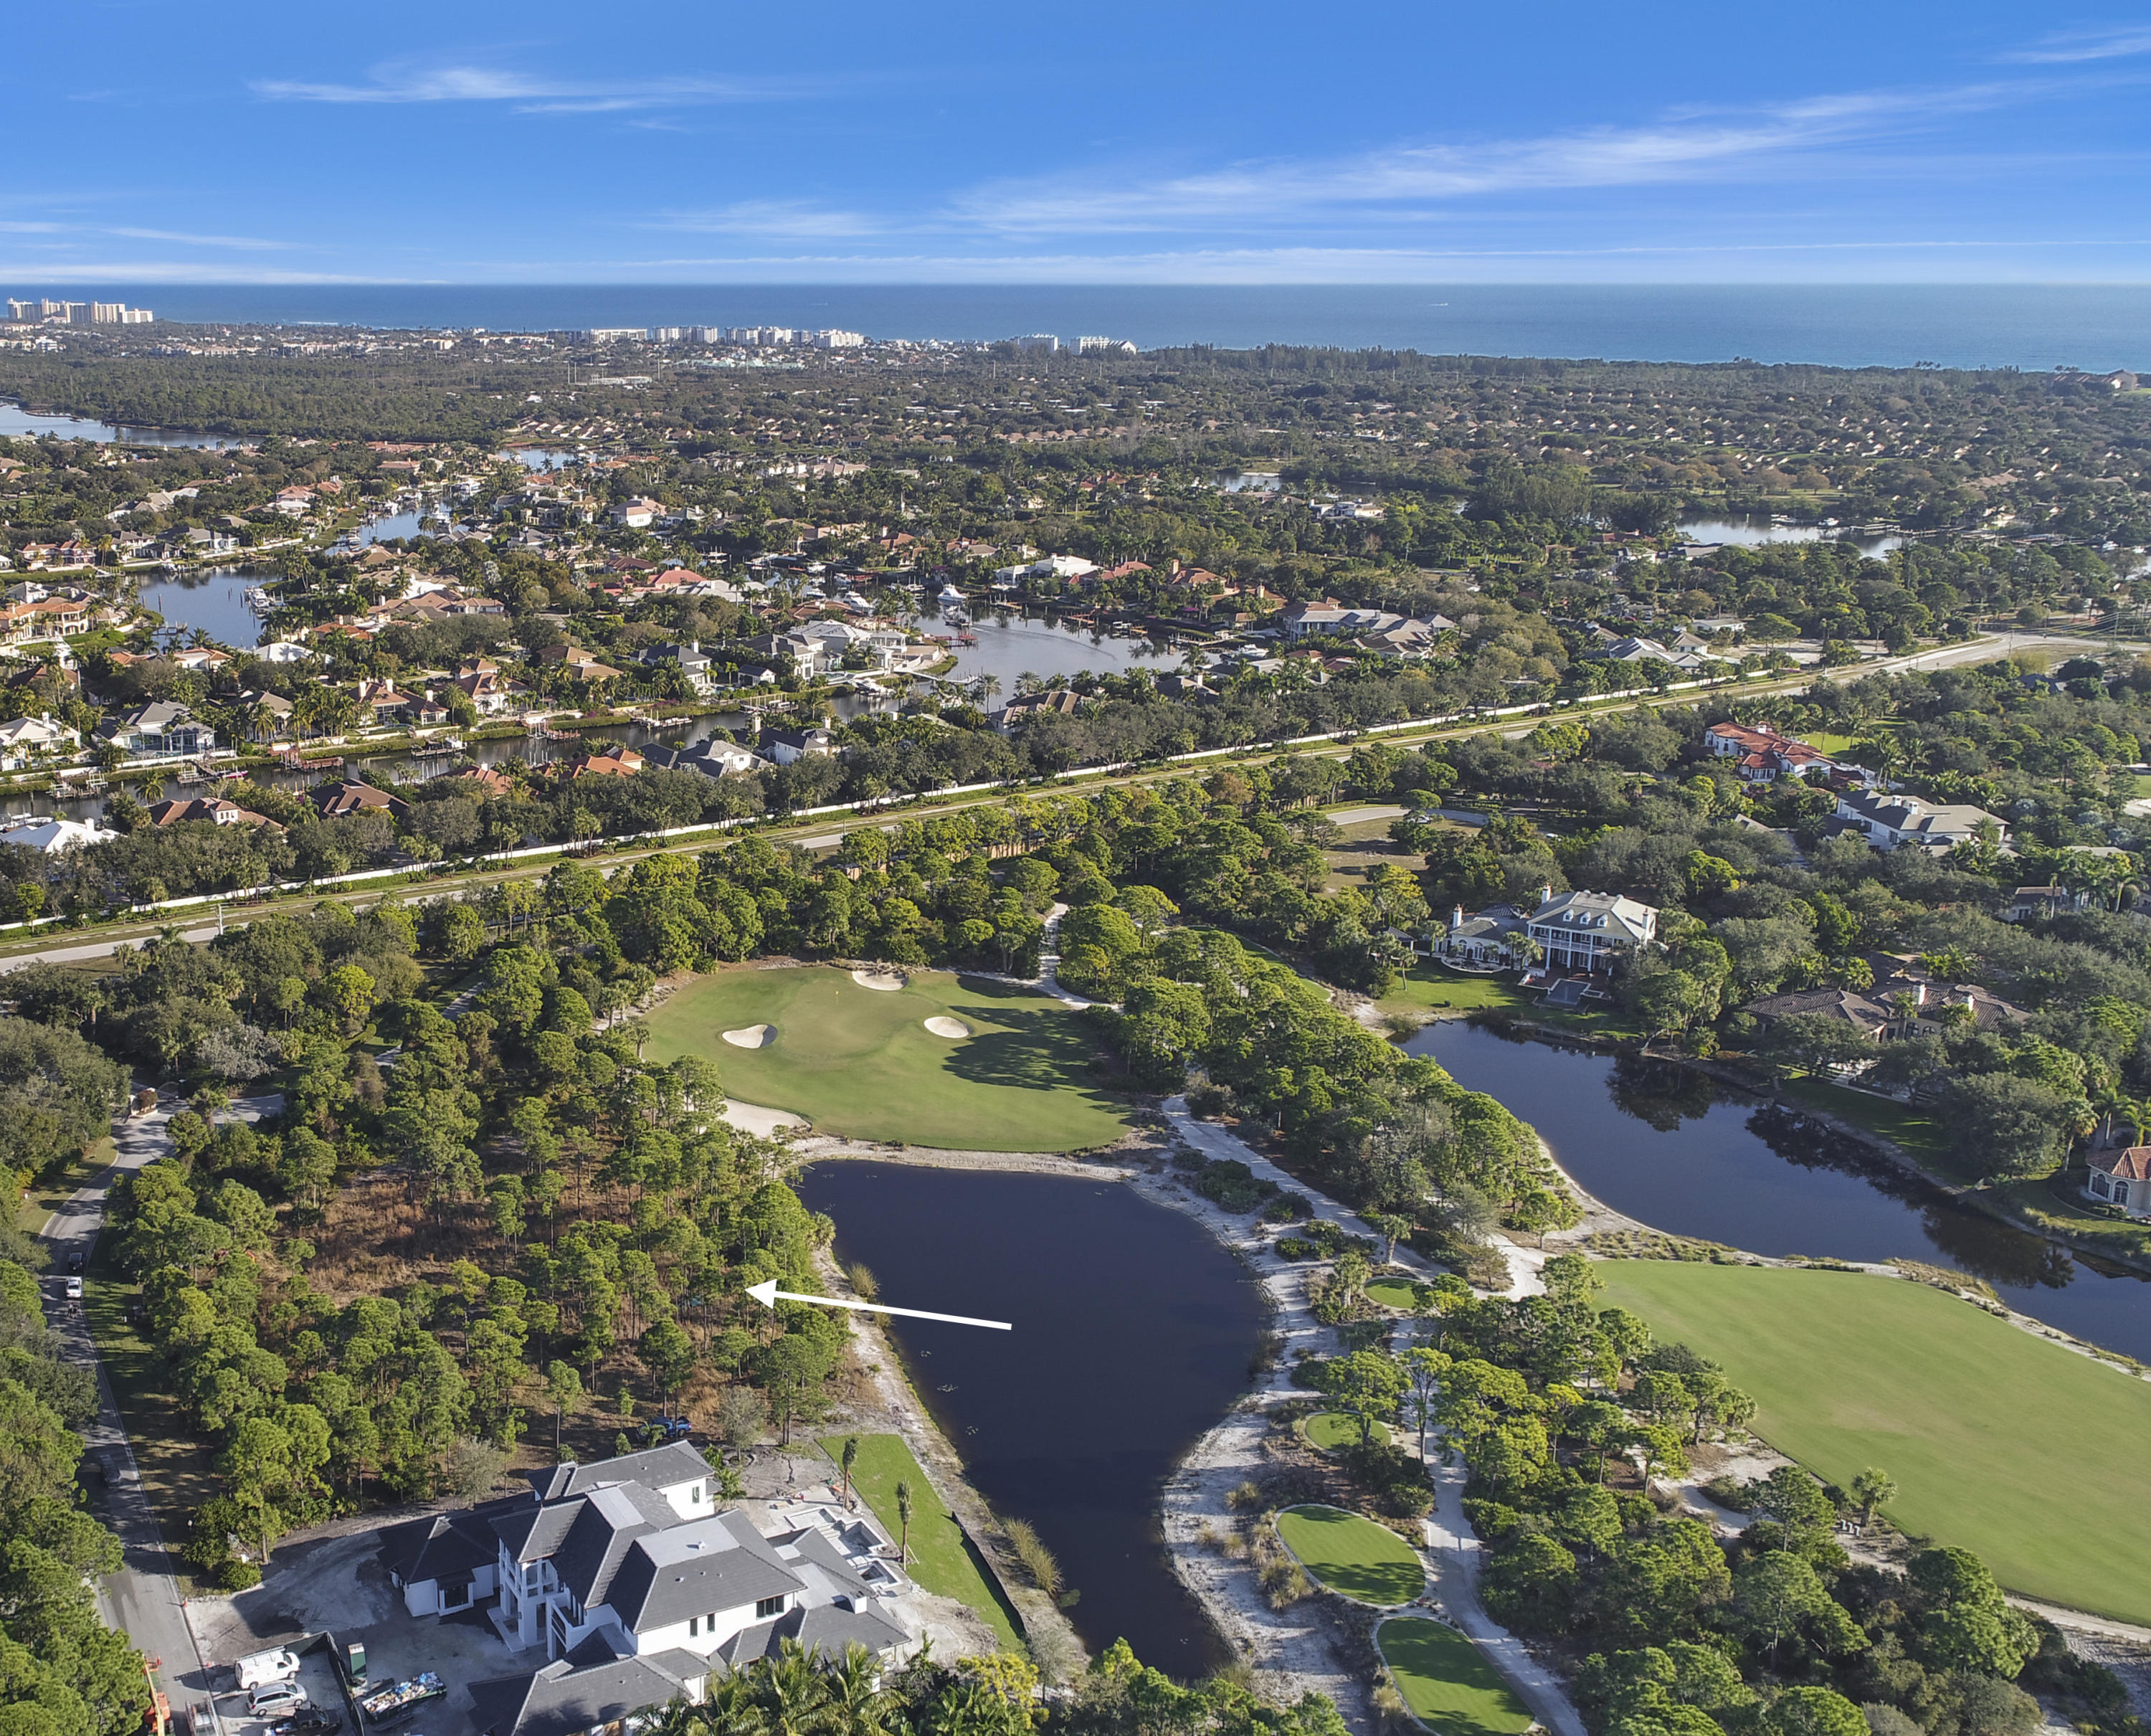 228 Bears Club Drive, Jupiter, Florida 33477, ,C,Single family,Bears Club,RX-10497149